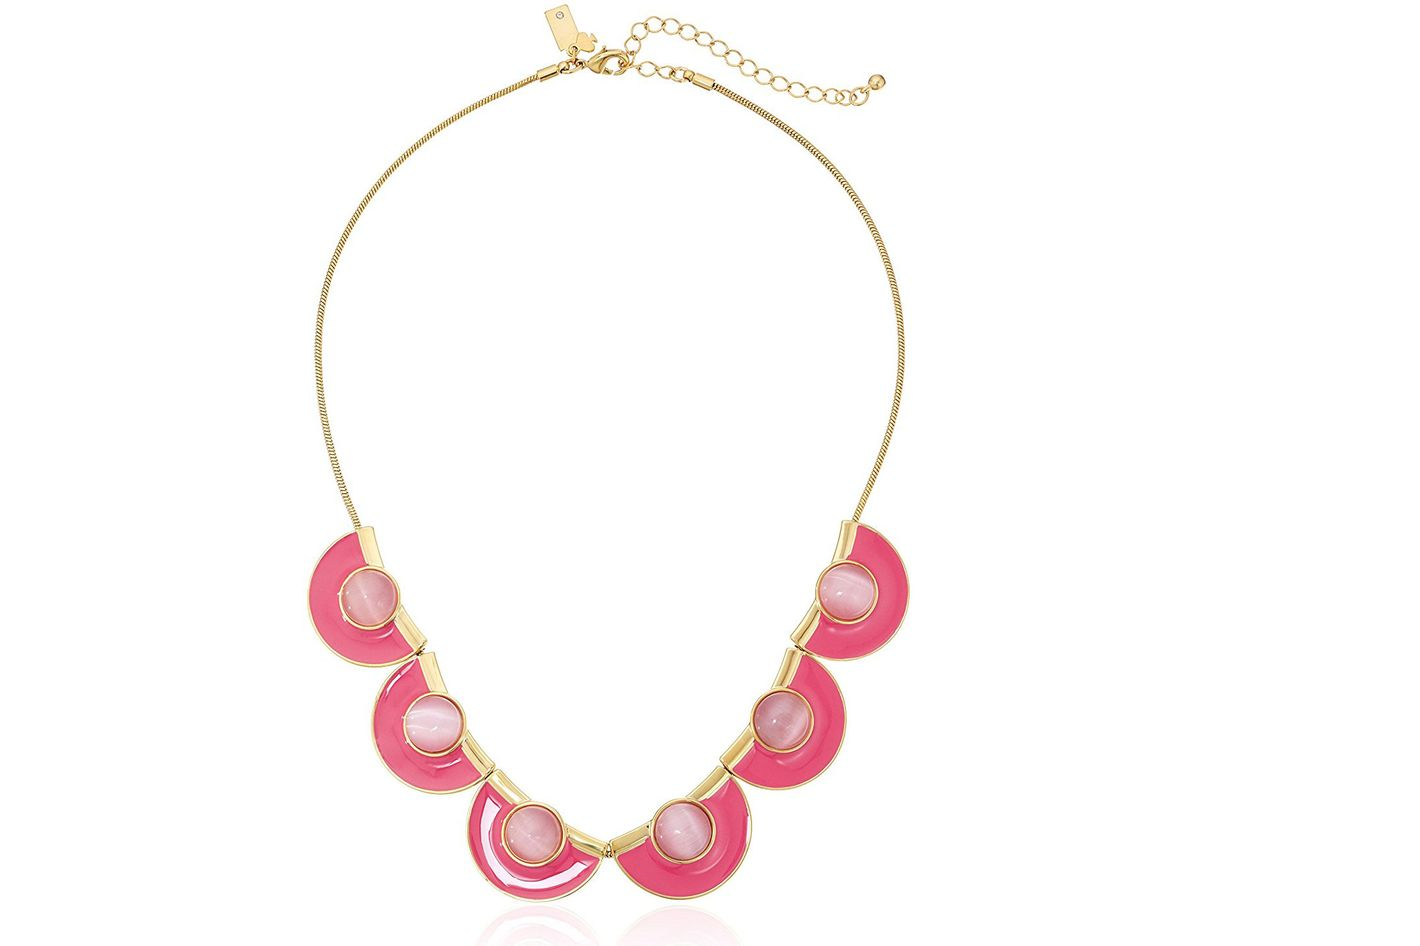 Kate Spade New York Pink Short Necklace